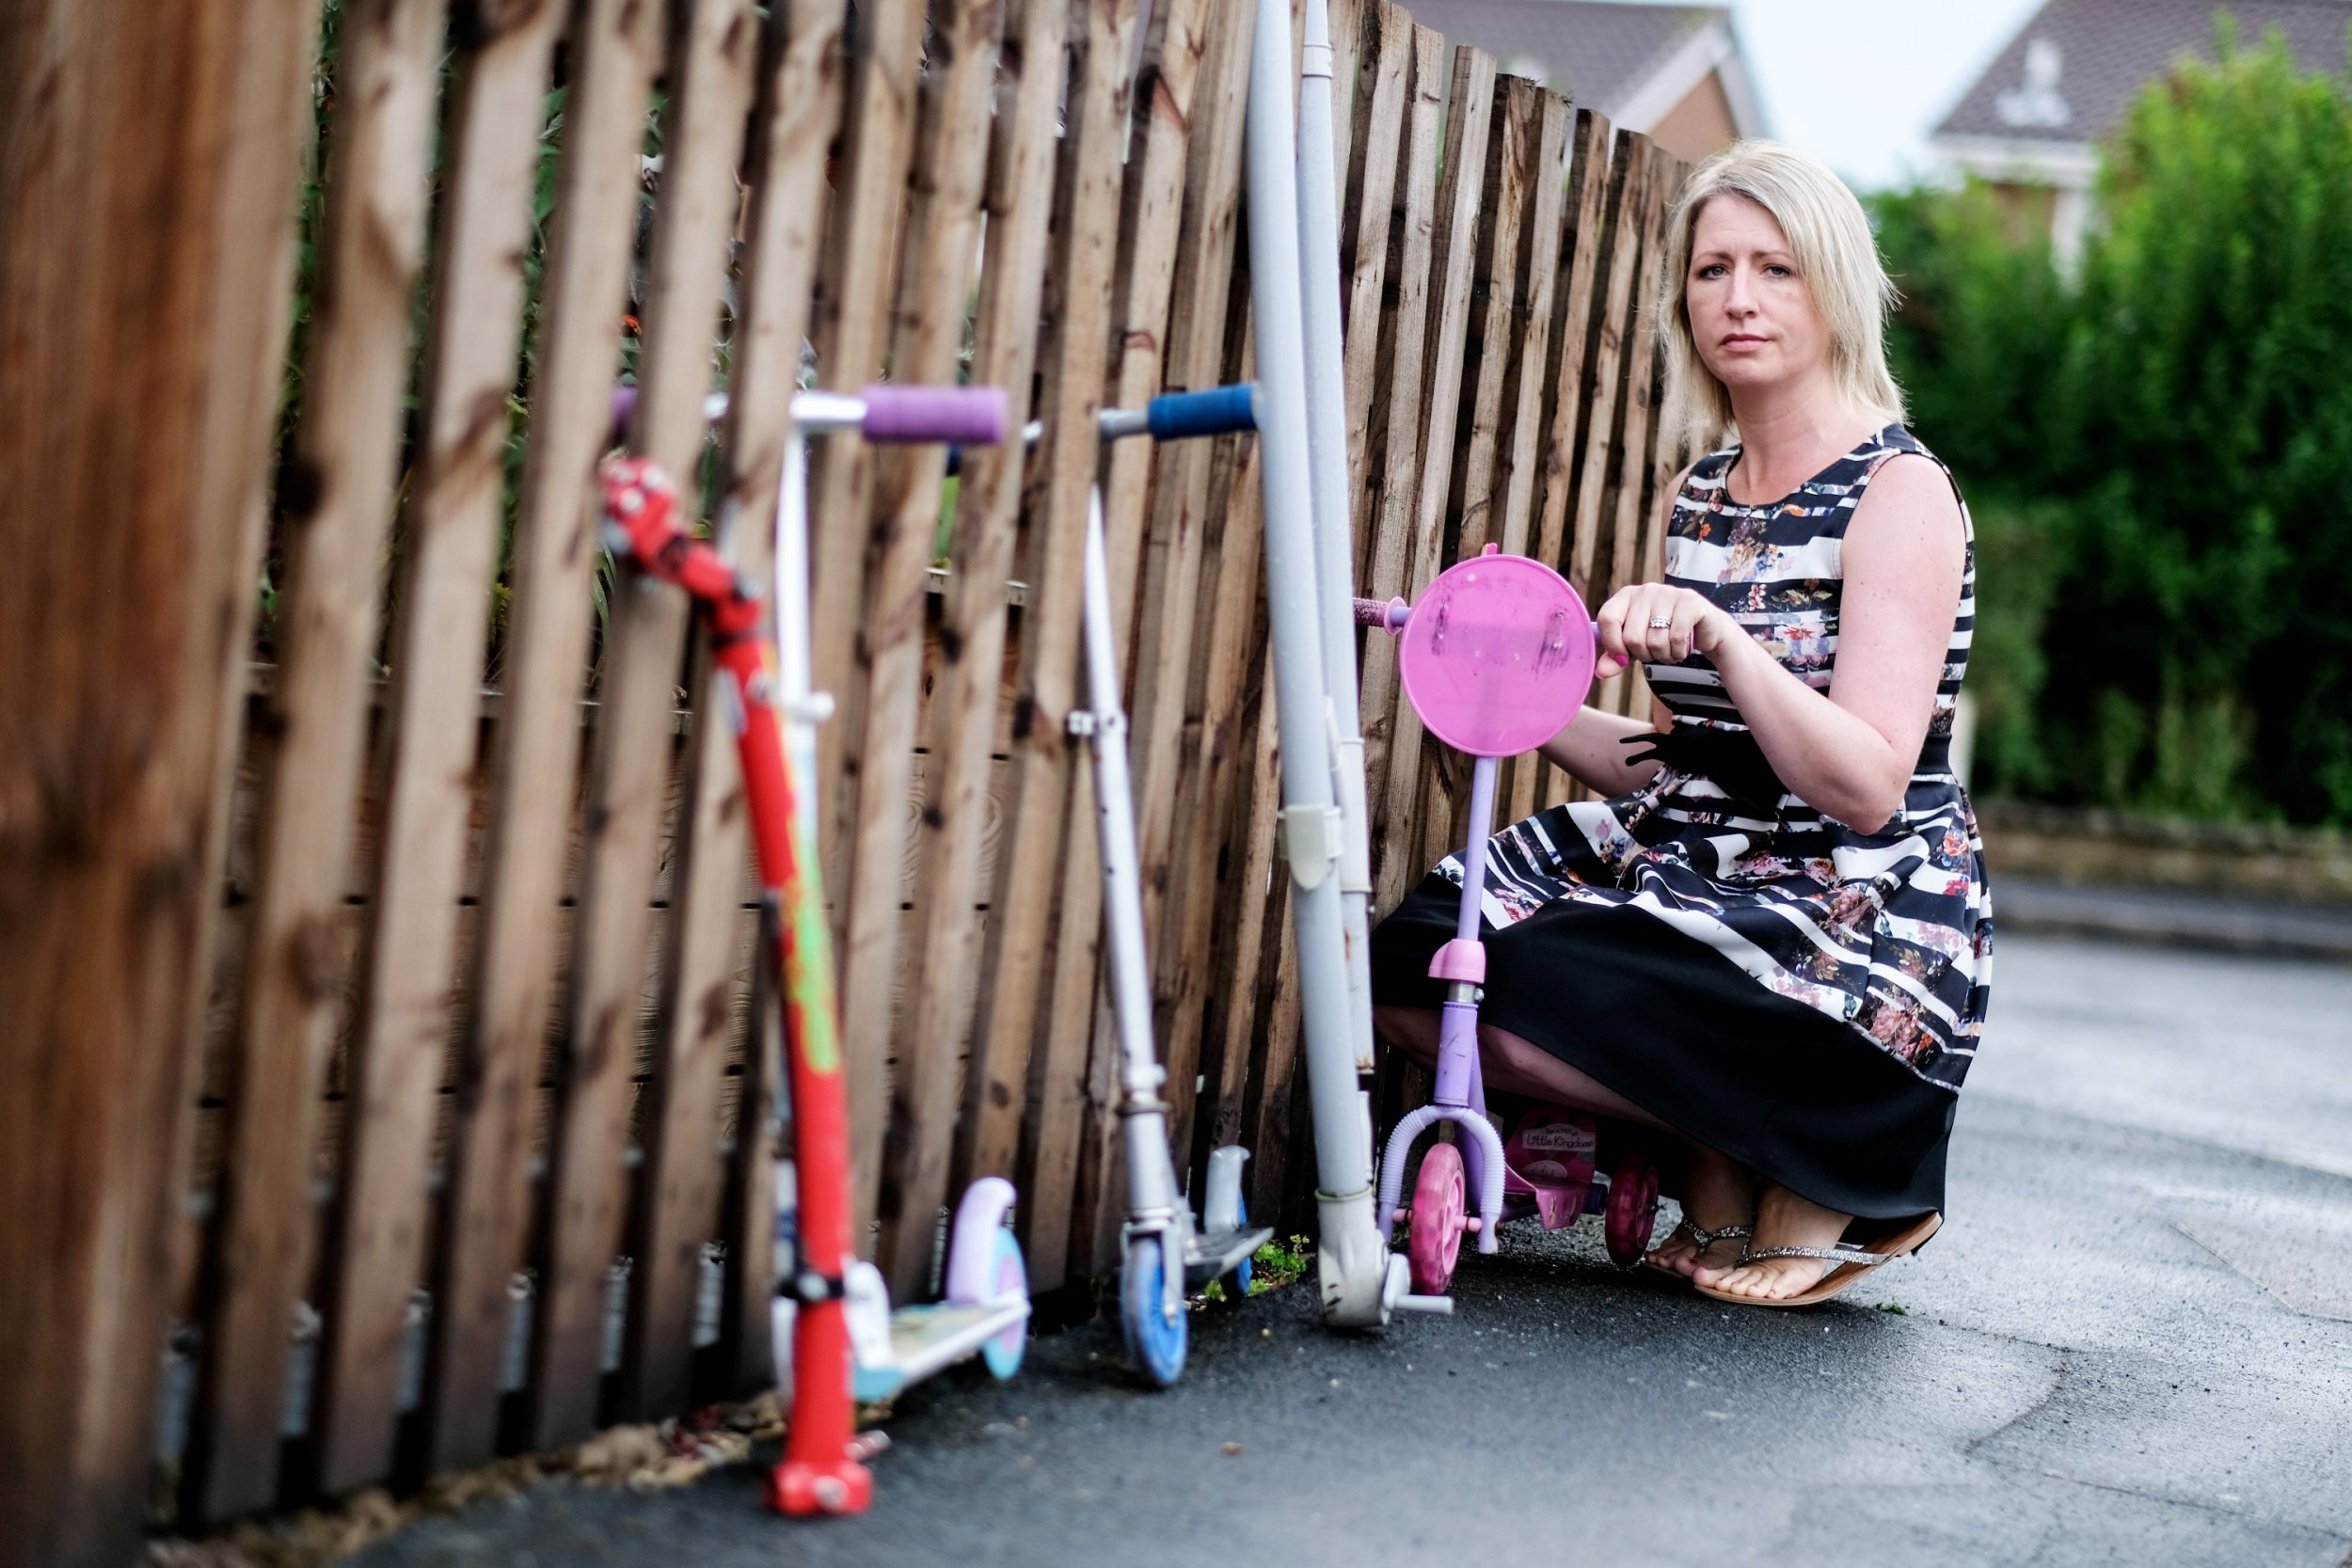 """Emma Reckless, 42, a teacher from Nottingham has been fined ?75 for leaving three scooters out for the scrap metal man, July 27 2018. Emma accepts she had not been in touch with the scrap man or left a note but she said one goes around nearly every day and has previously left stuff for them to collect. See NTI story NTIFINE. A primary school teacher was slapped with a ?75 fine for fly-tipping after leaving a few things outside her Bulwell house for the scrap metal man to collect. Emma Reckless, 42, put three children's scooters and a parasol holder on the street outside her house for picking up but instead got a knock on the door from a CPO on Tuesday, (July 24). The Nottingham resident accepts she had not been in touch with the scrap man or left a note but she said one goes around nearly every day and has previously left stuff for them to collect. She also said her neighbours do the same thing. She and her local councillor Ginny Klein both believe there should be some flexibility and residents need to be made more aware that putting out scrap metal is considered """"illegal"""" by Nottingham City Council. The mum-of-two described it as ?ridiculous? and said ?I was really shocked and really upset."""